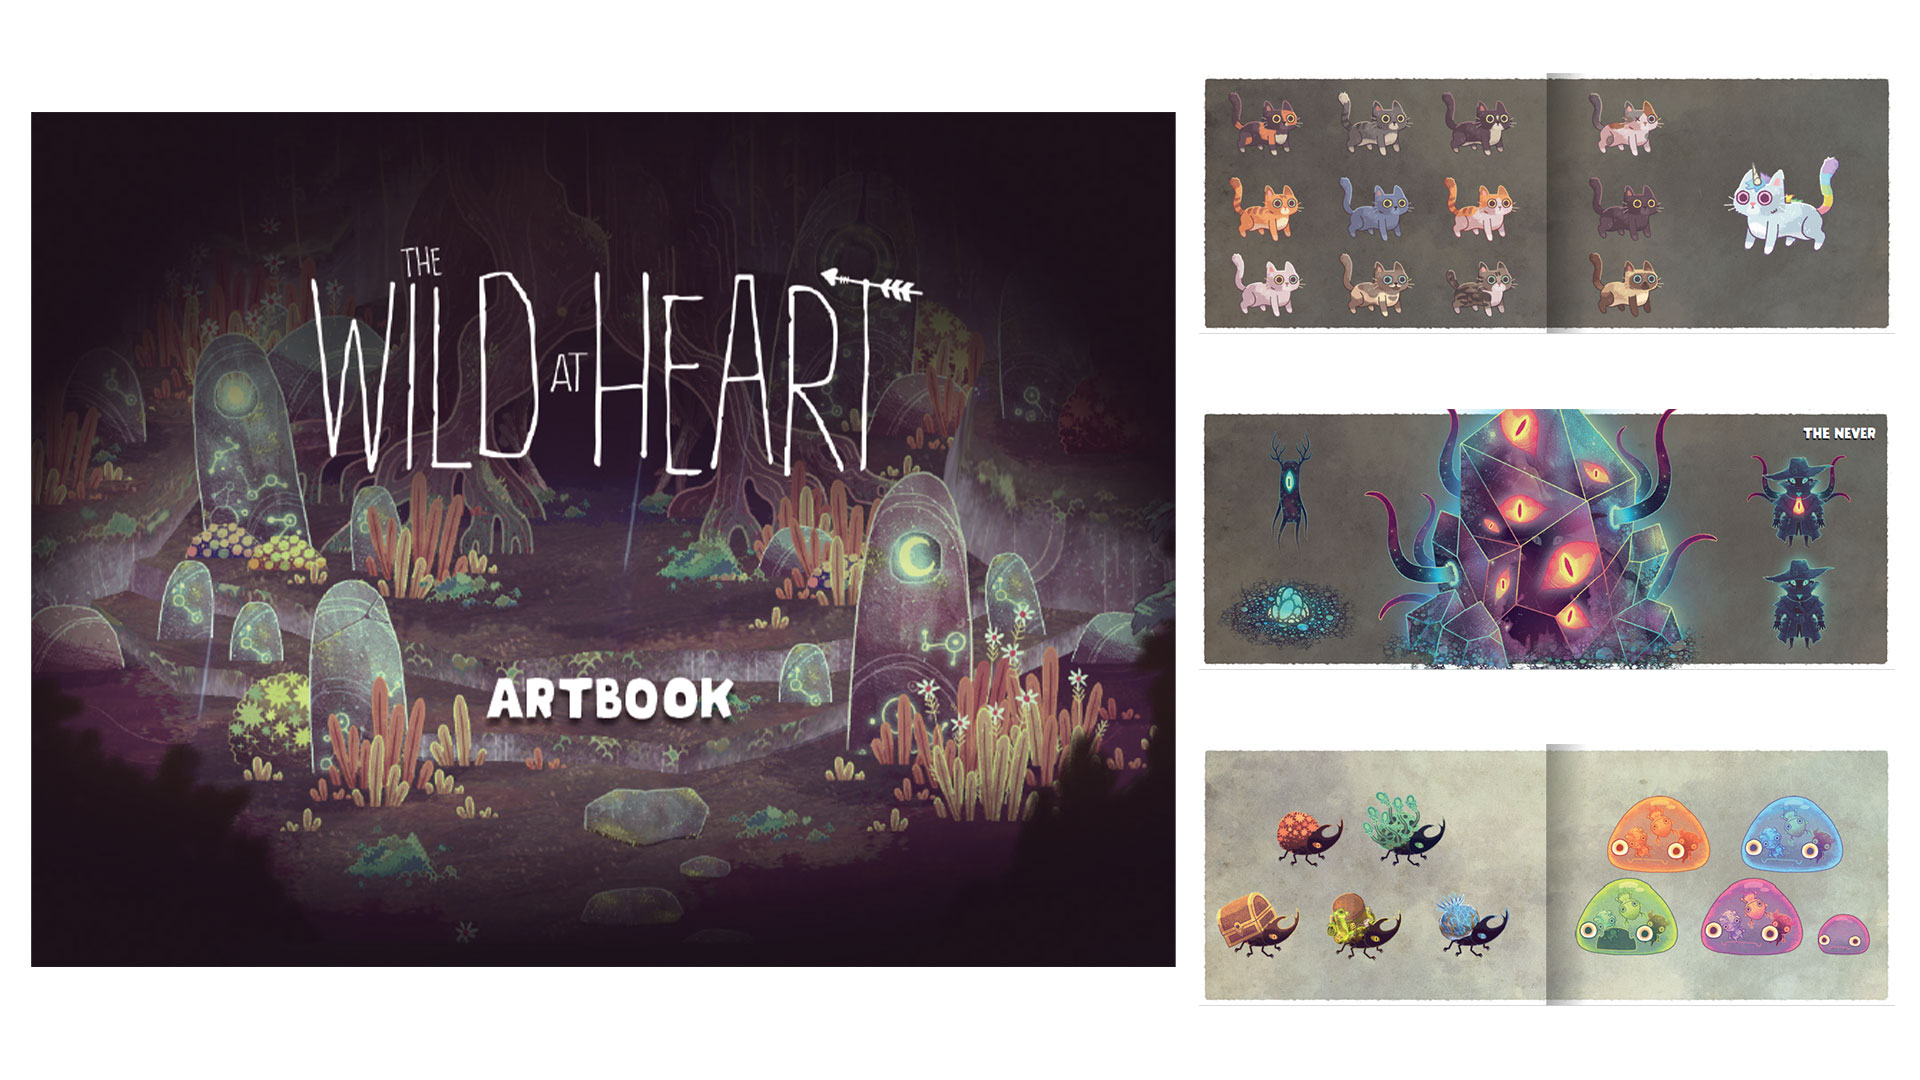 artbook-the-wild-at-hearts